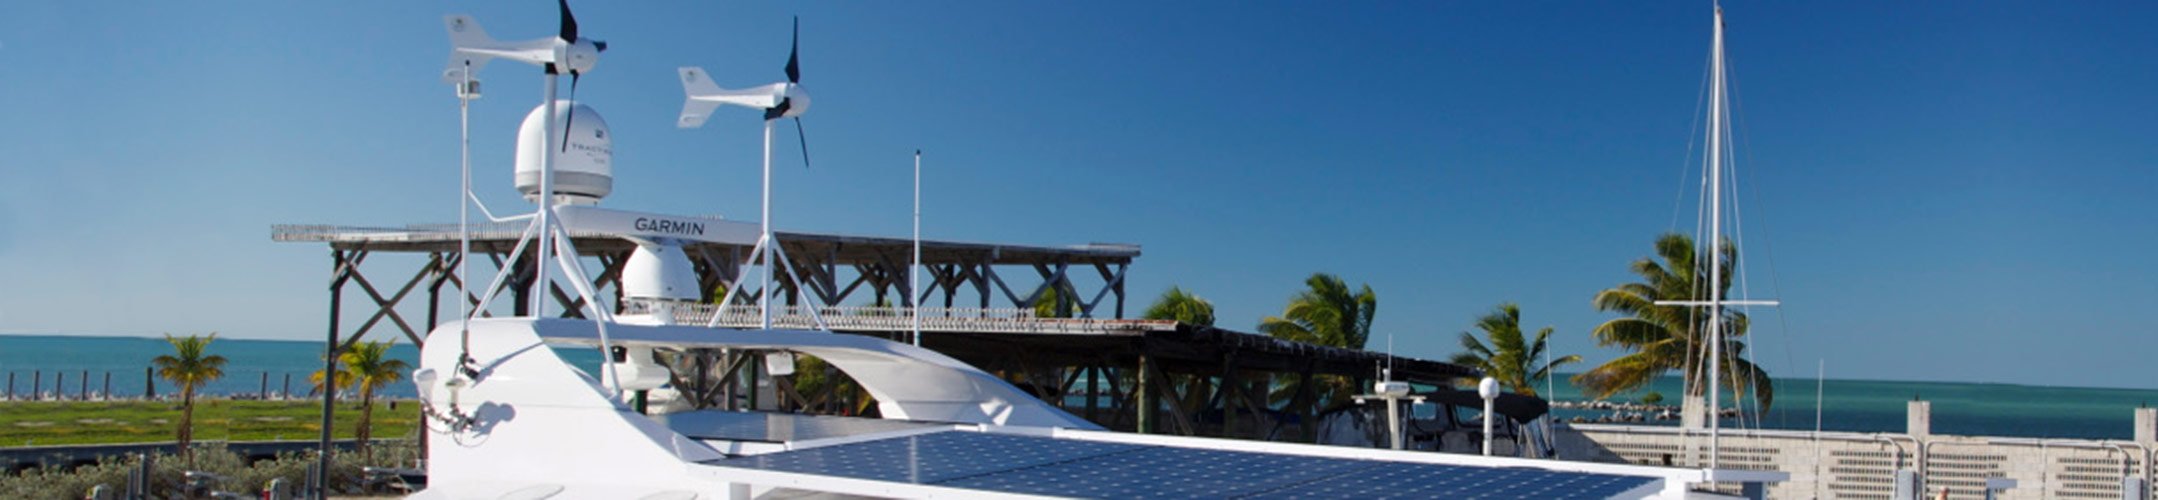 Solar Panel and Wind Turbine on Yacht